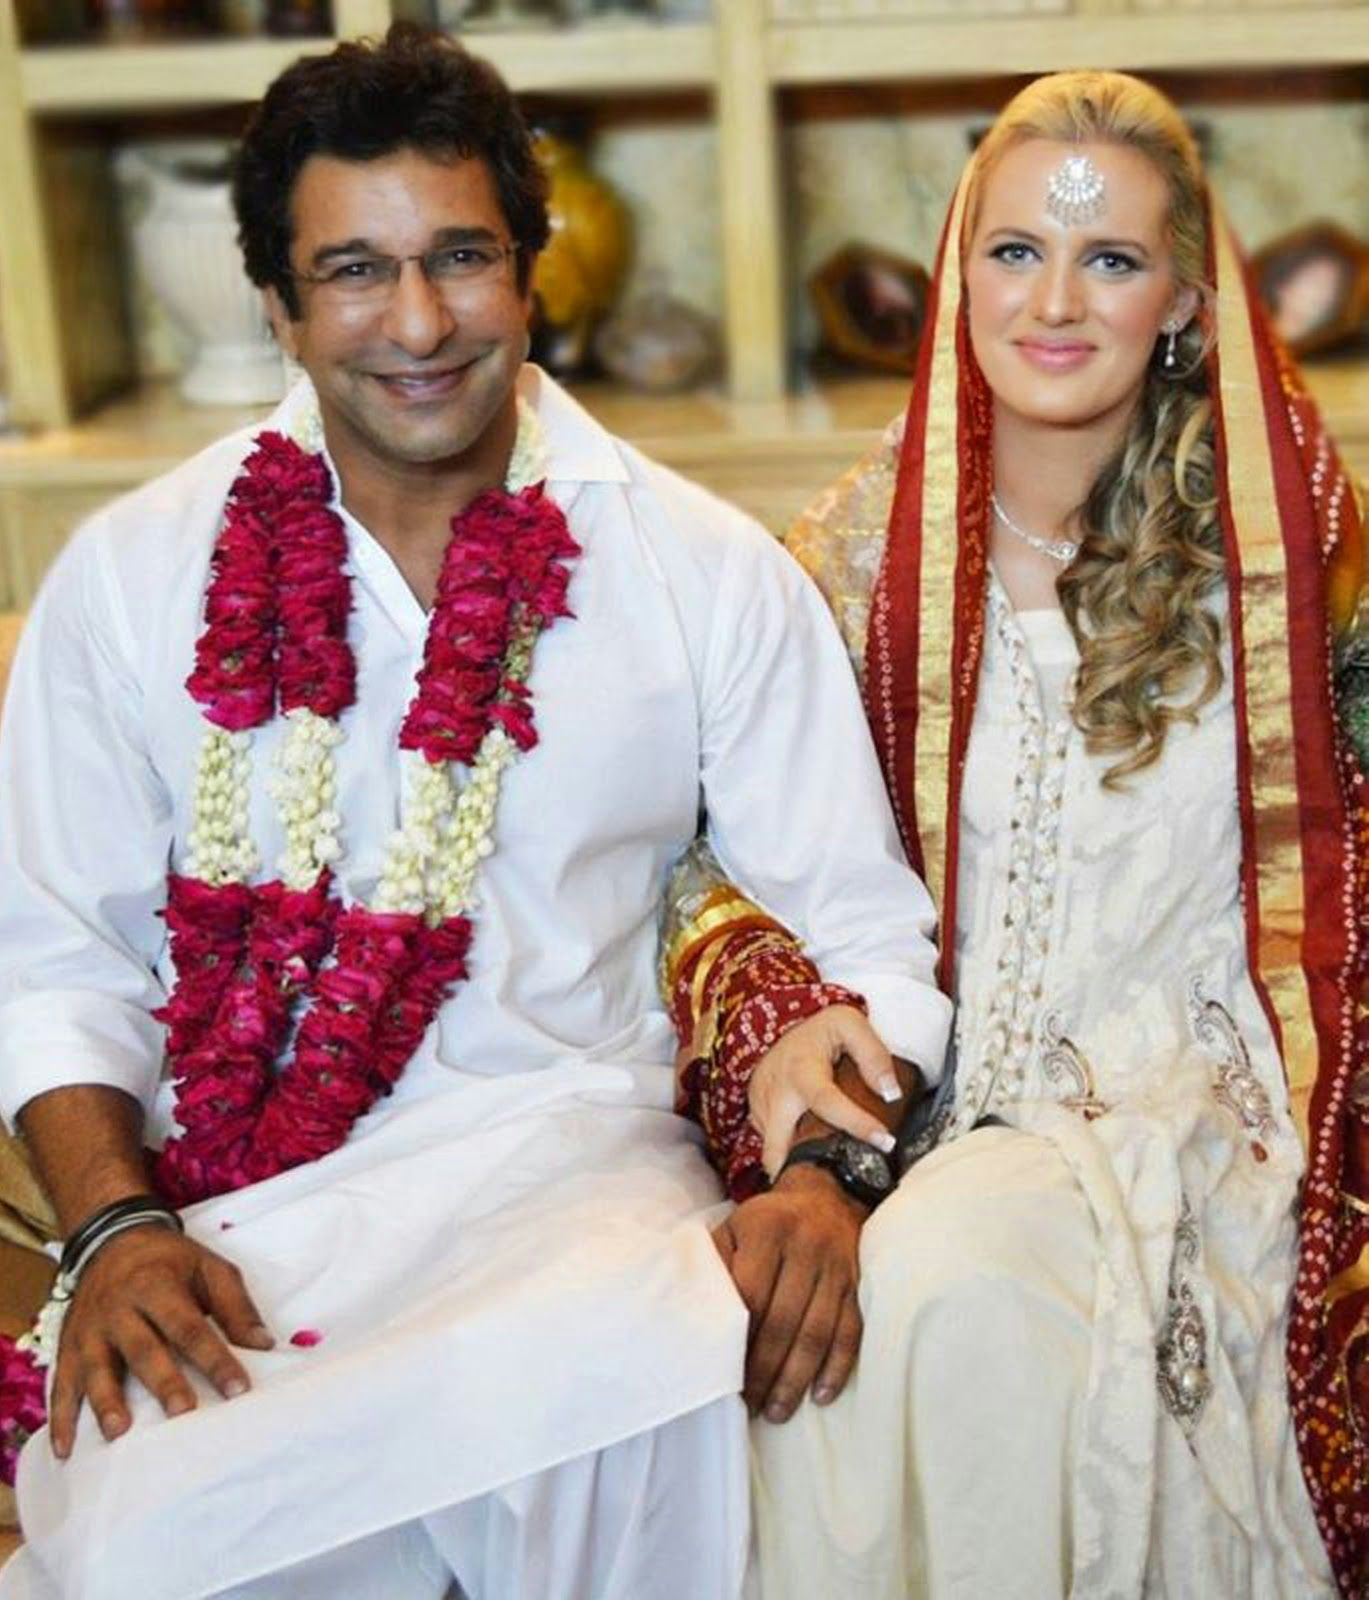 Wasim Akram Marries Aus Friend Shaniera Thompson Legendary Bowler Has Married His In Stan